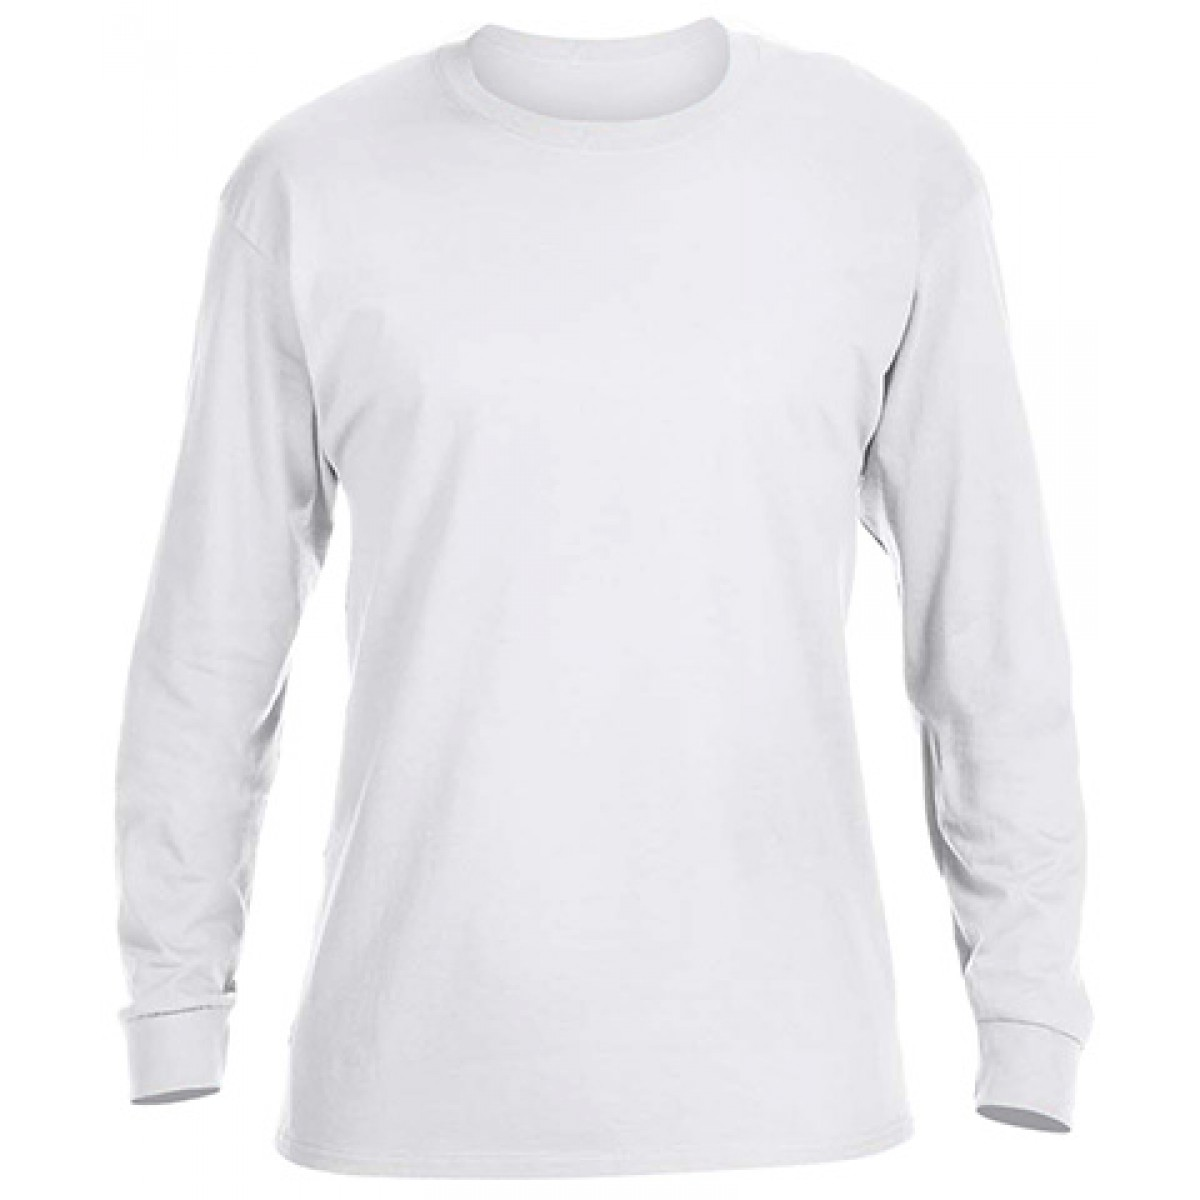 Heavy Cotton Long-Sleeve Adidas Shirt-White-L